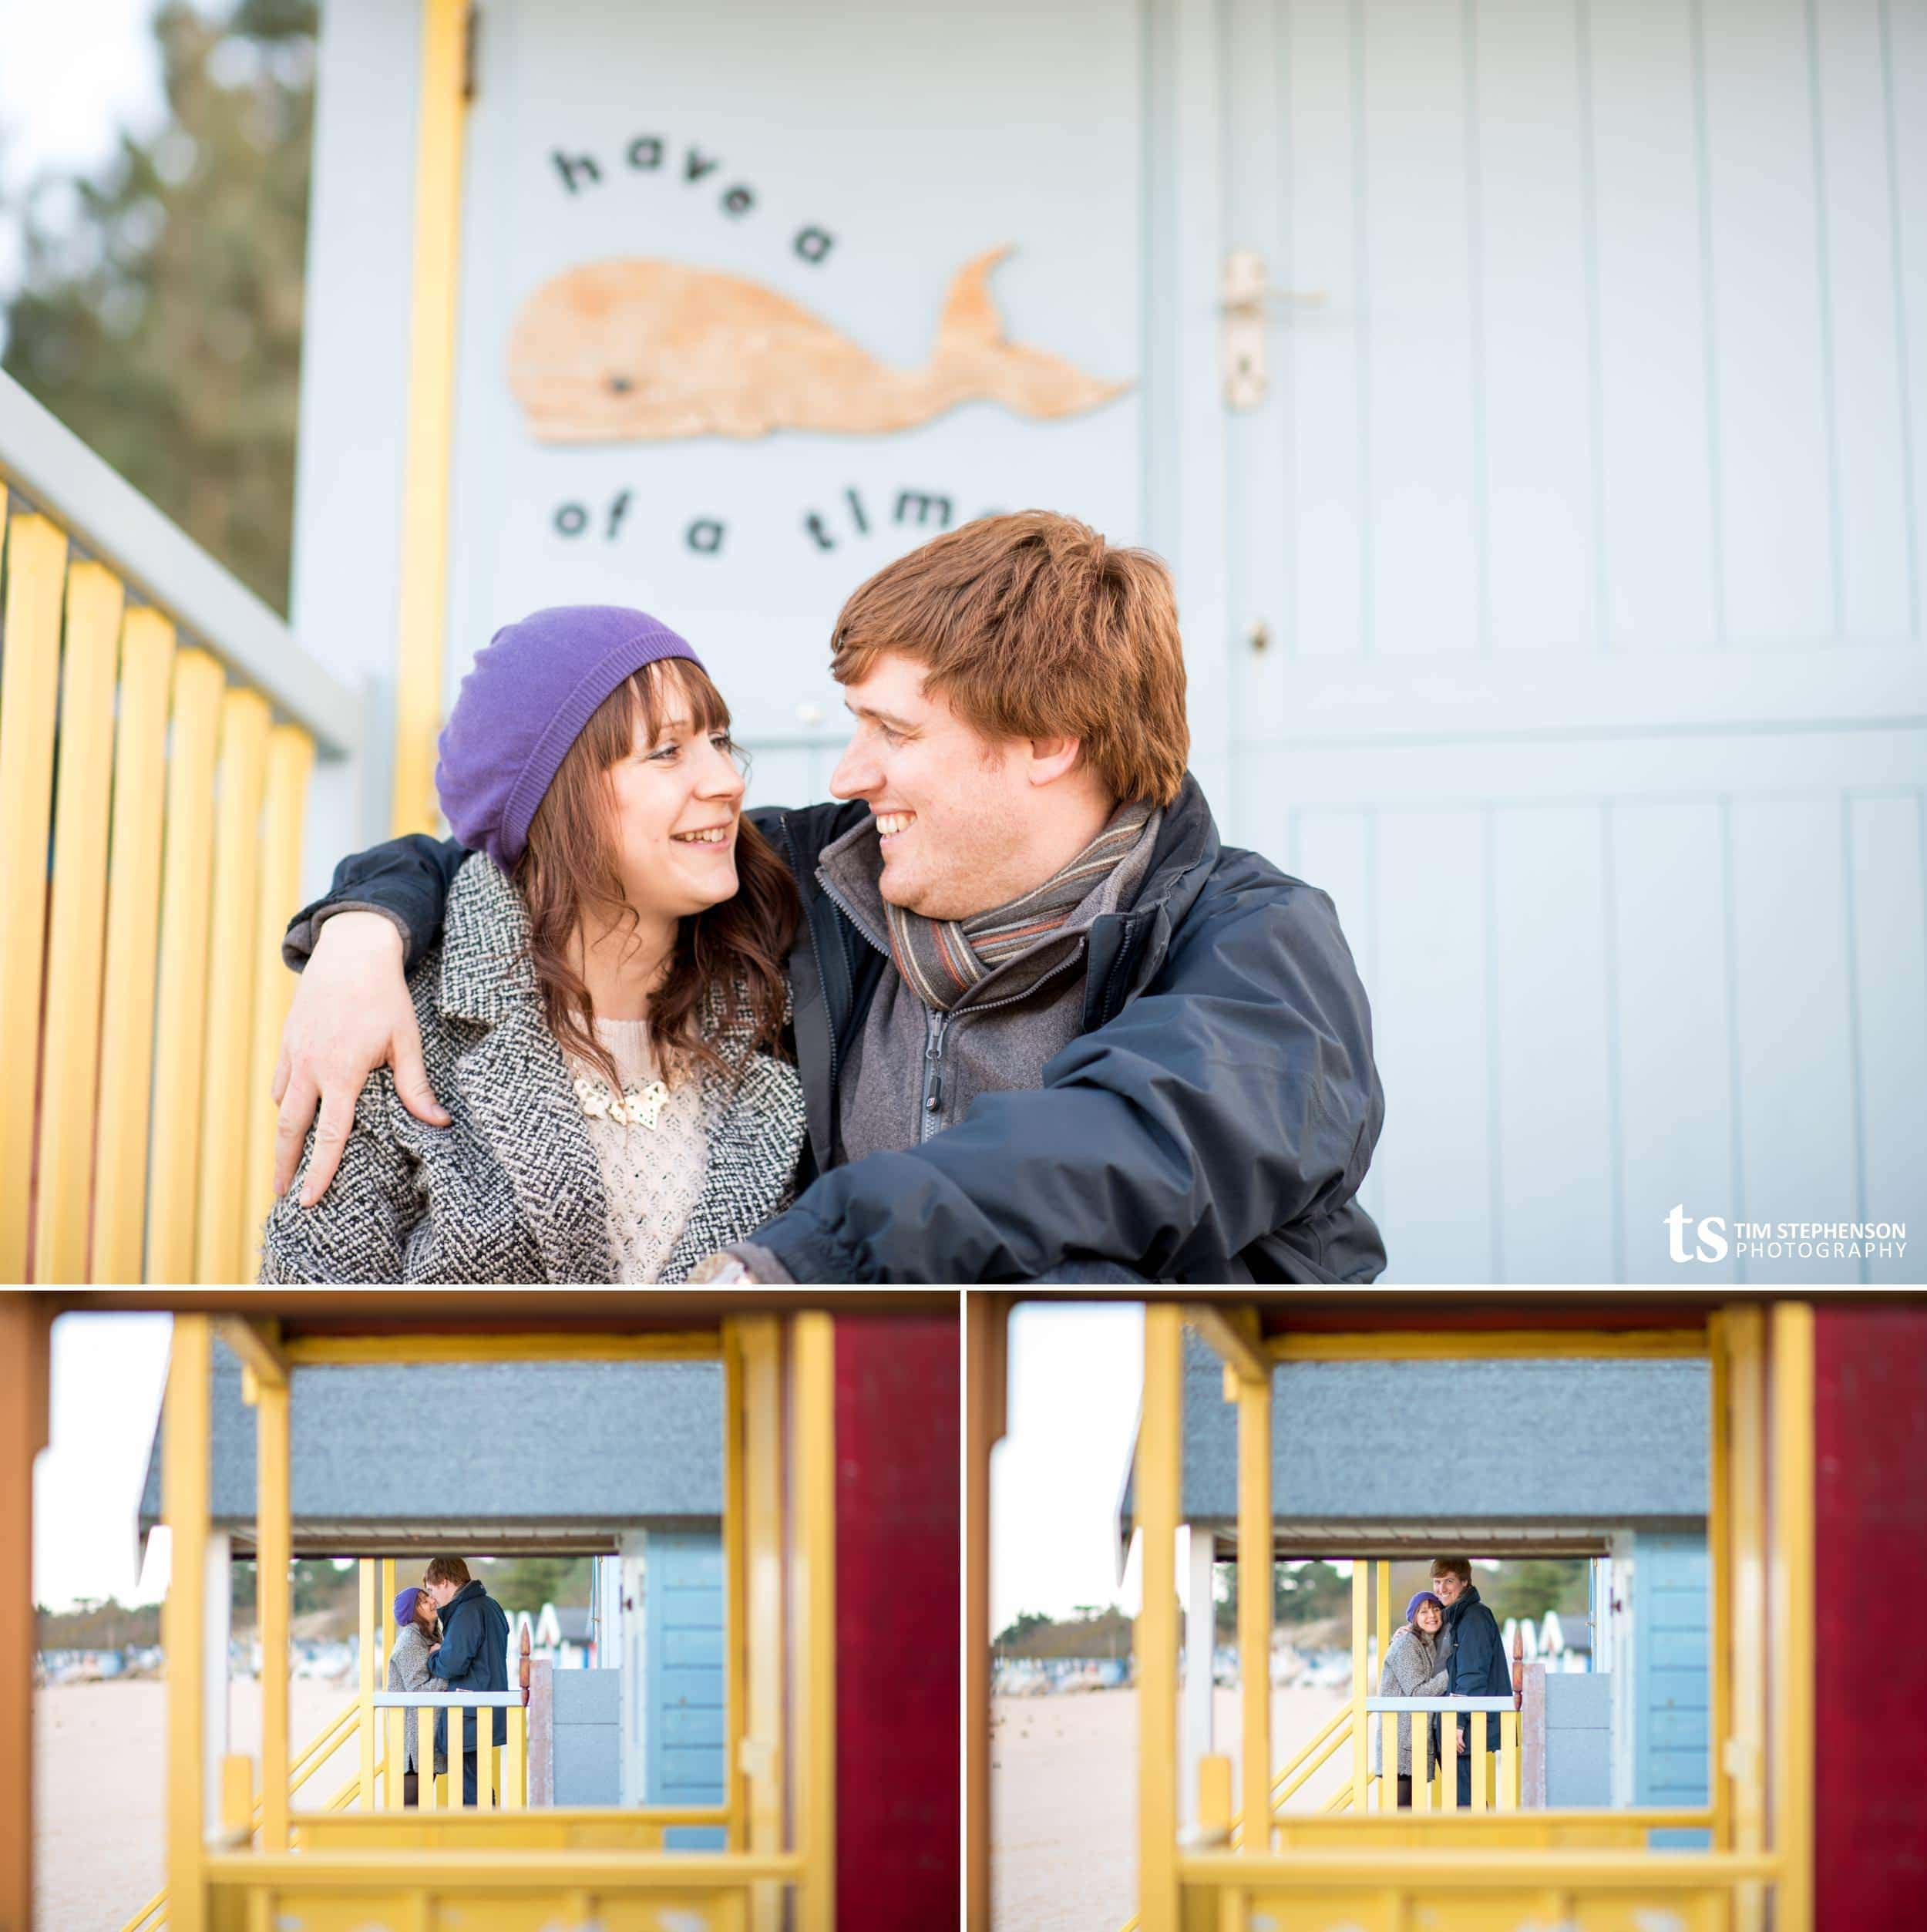 Rosie-Ben-Norfolk-Engagement-Photography 7